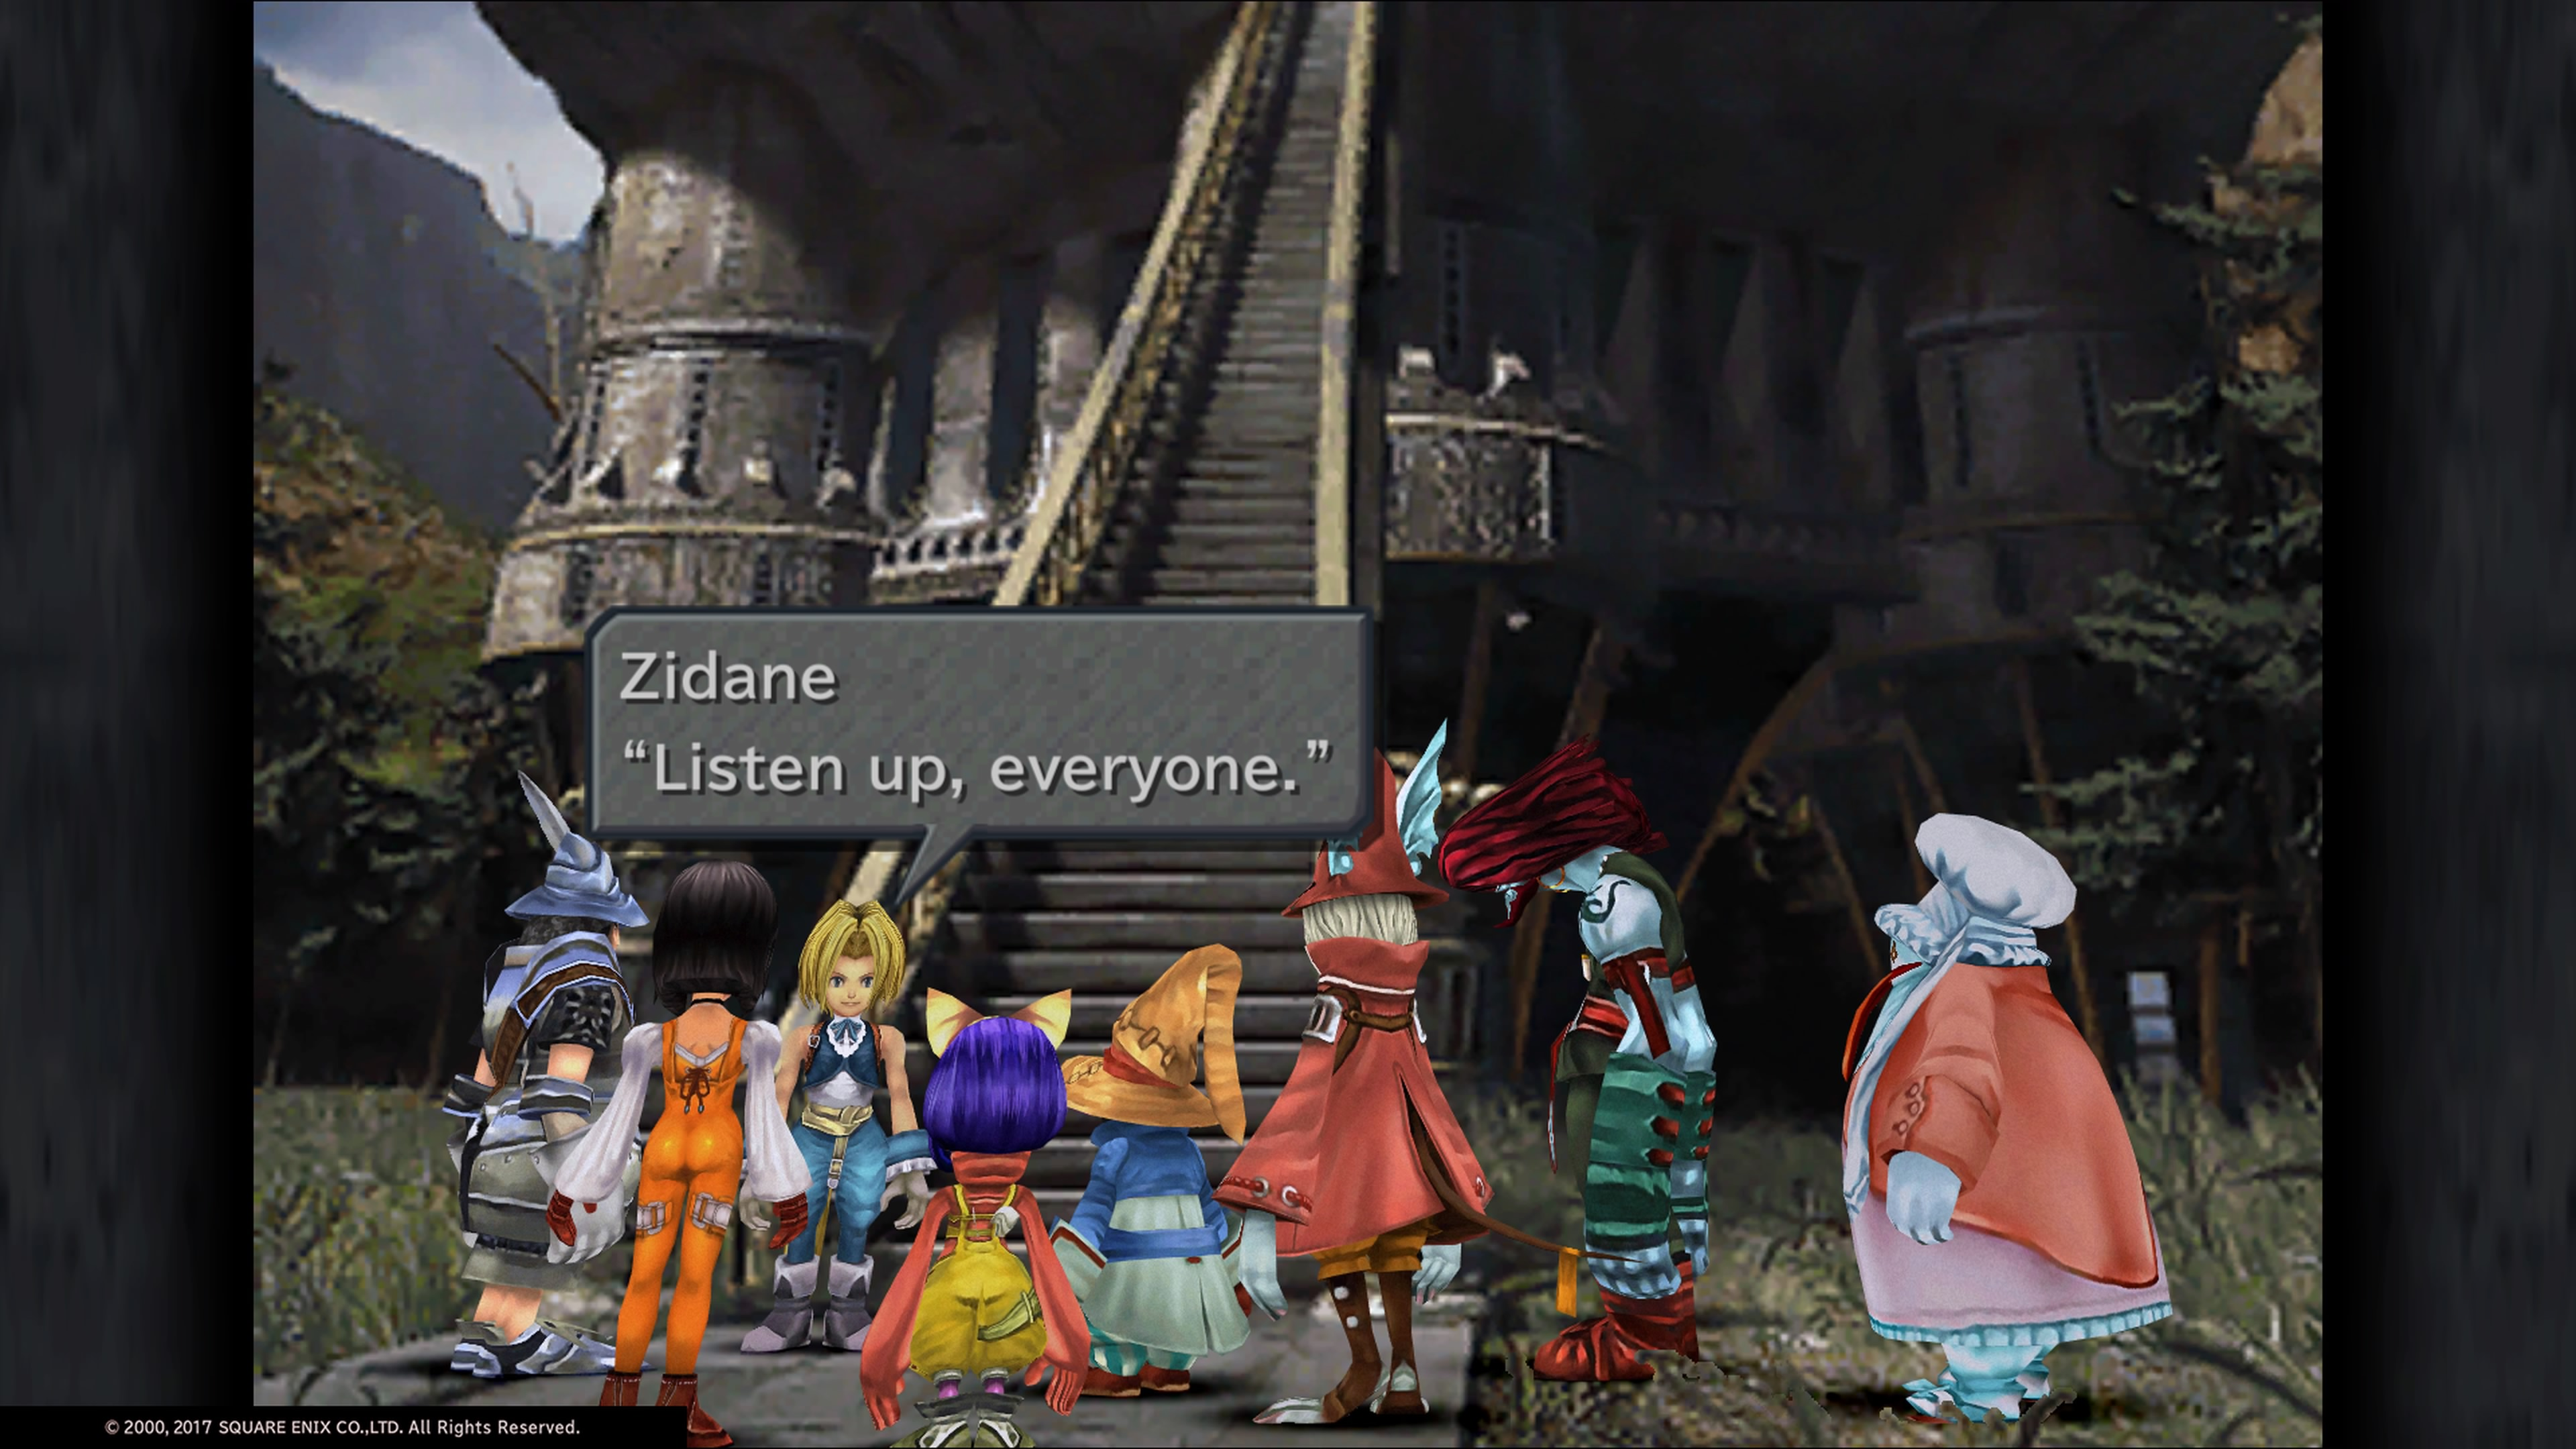 Final Fantasy Ix Is Now Available For Playstation 4 Rpg Site